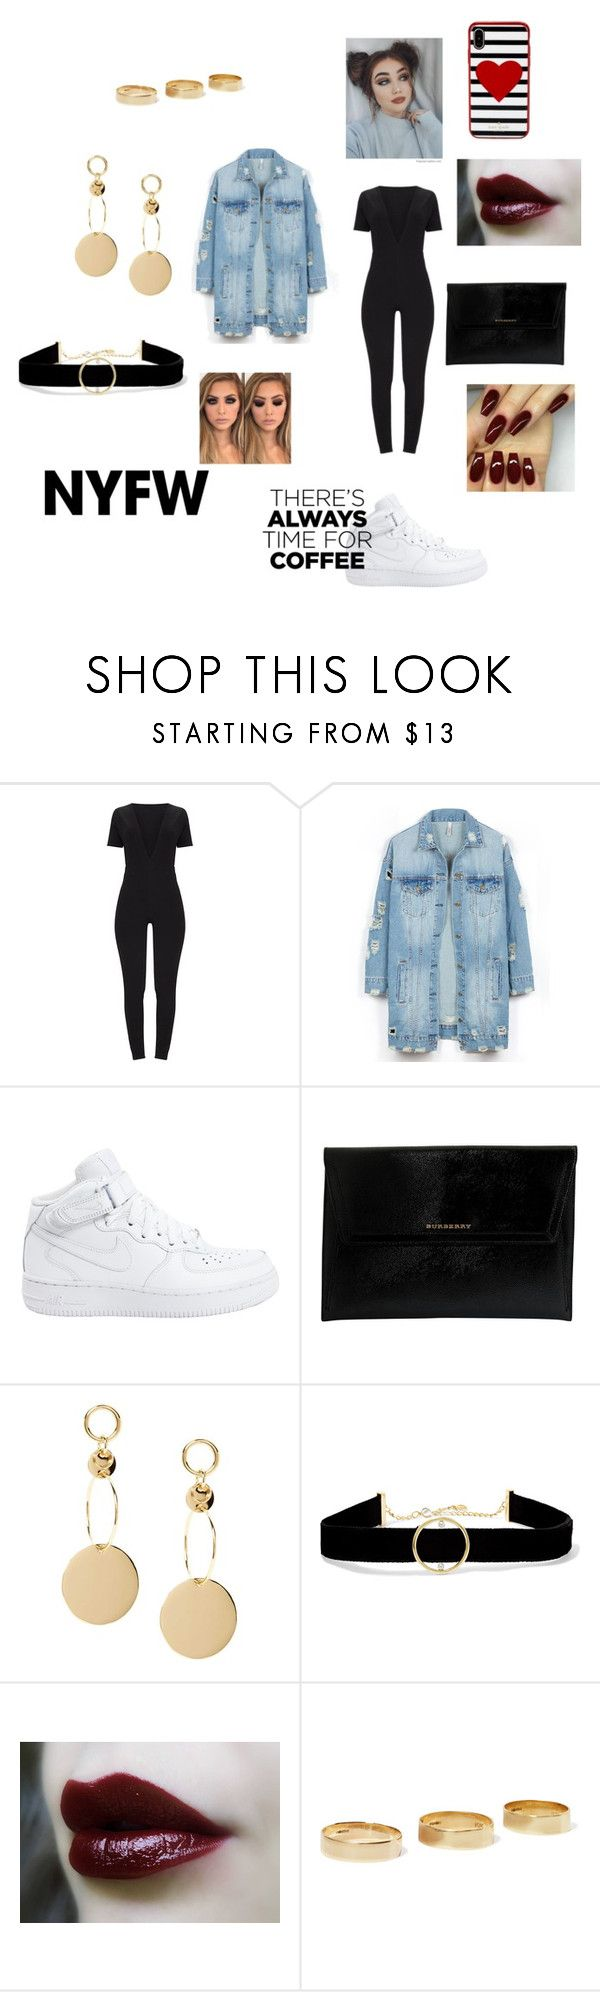 """""""NYFW (new york fashion week)"""" by dreimy ❤ liked on Polyvore featuring LE3NO, NIKE, Burberry, Anissa Kermiche, Loren Stewart and Kate Spade"""